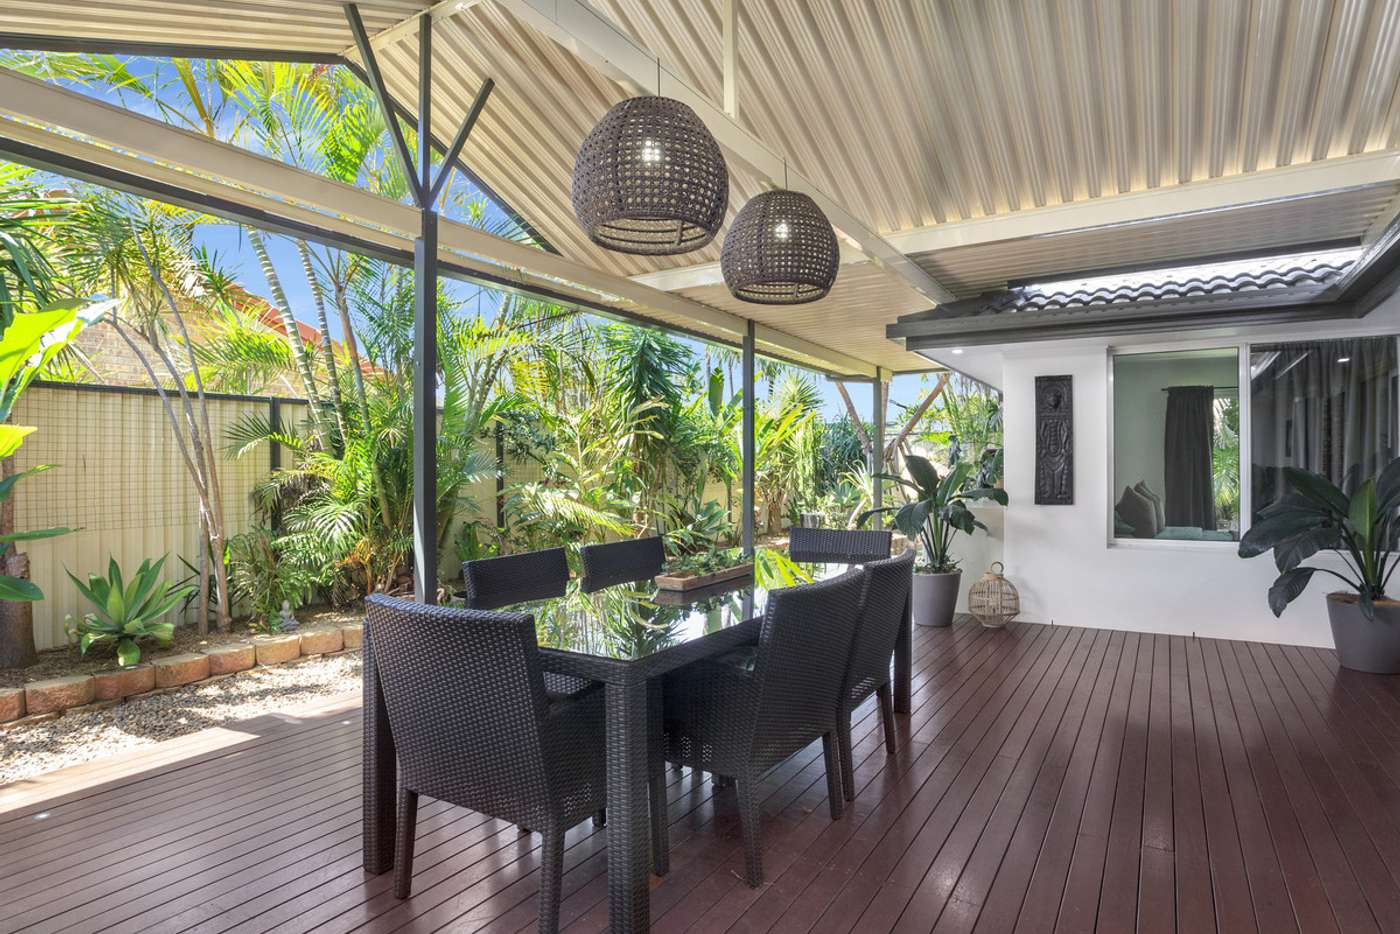 Main view of Homely house listing, 18 Coronet Crescent, Burleigh Waters QLD 4220